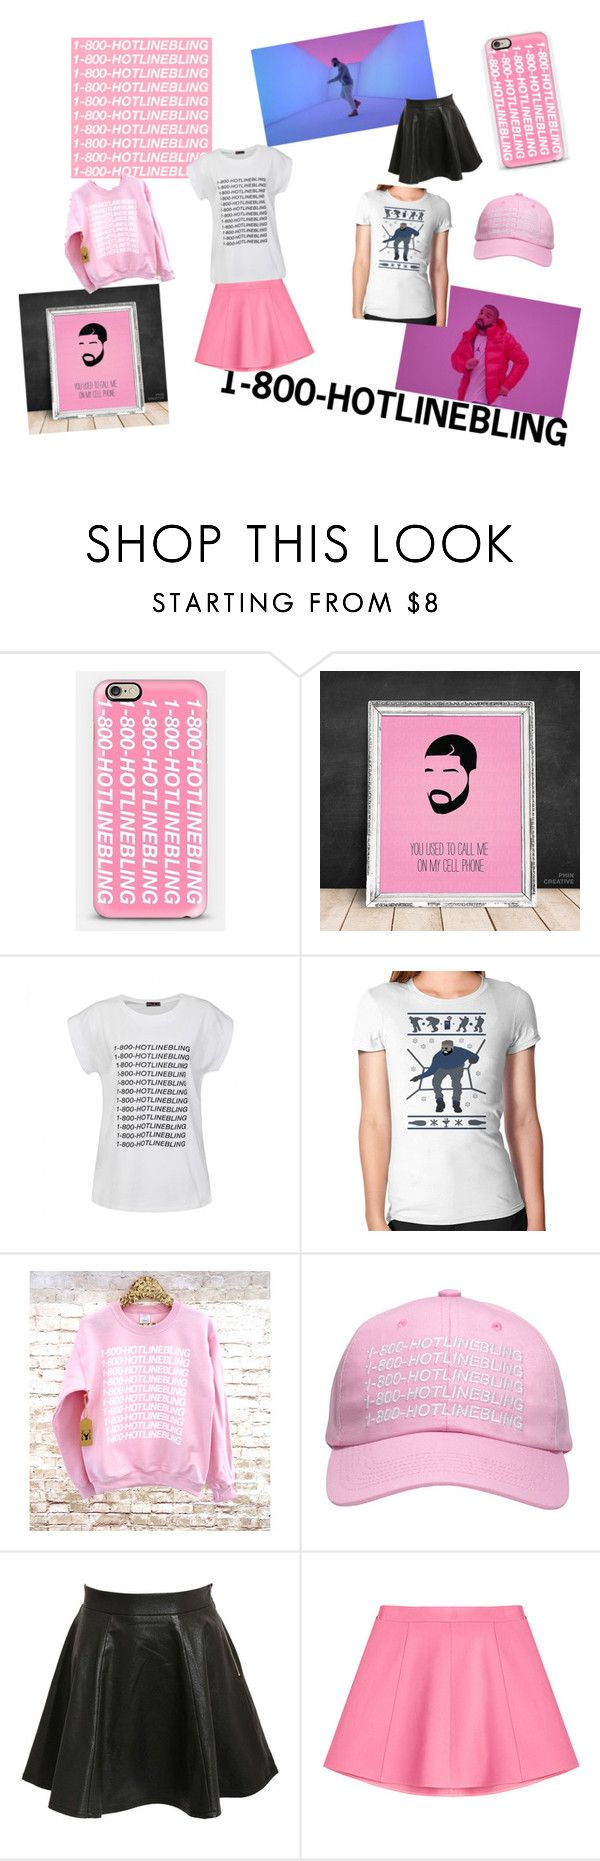 """1-800-HOTLINEBLING"" by lidage on Polyvore!!! Go check it out, follow and like."